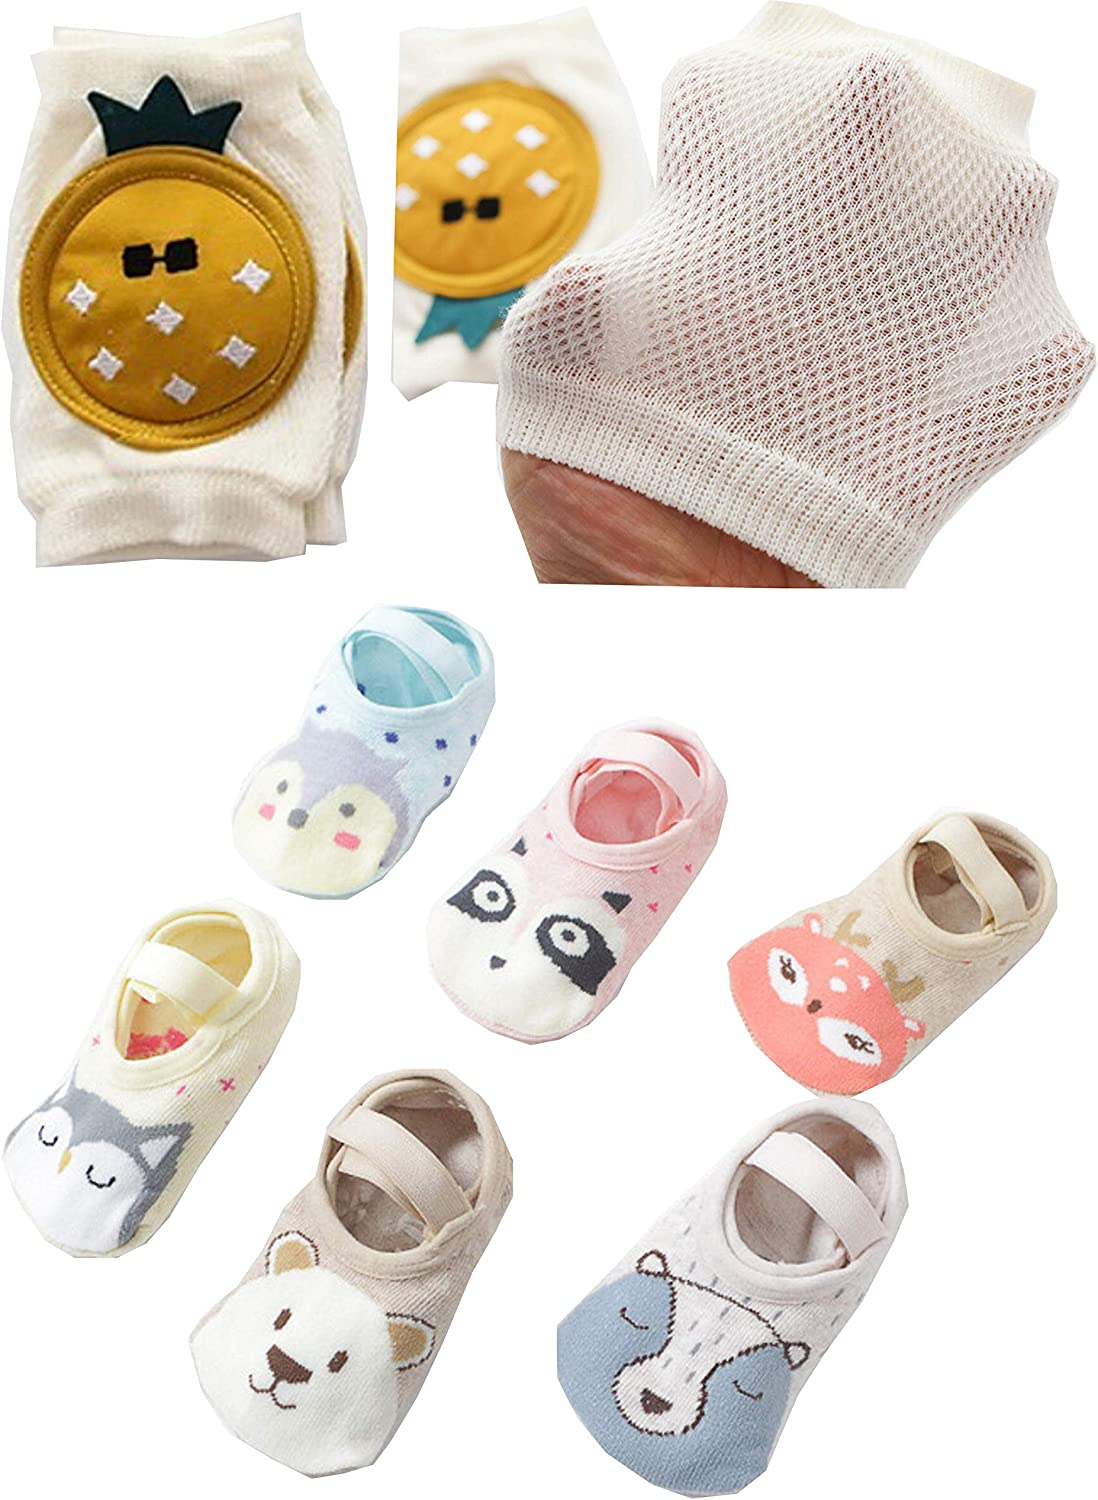 Baby Toddler Kids Set of 6 Pack Anti Slip Non Skid Grip Socks for Ages 8-36 Months Bundled with Protective Knee Pads (Medium, Thick)